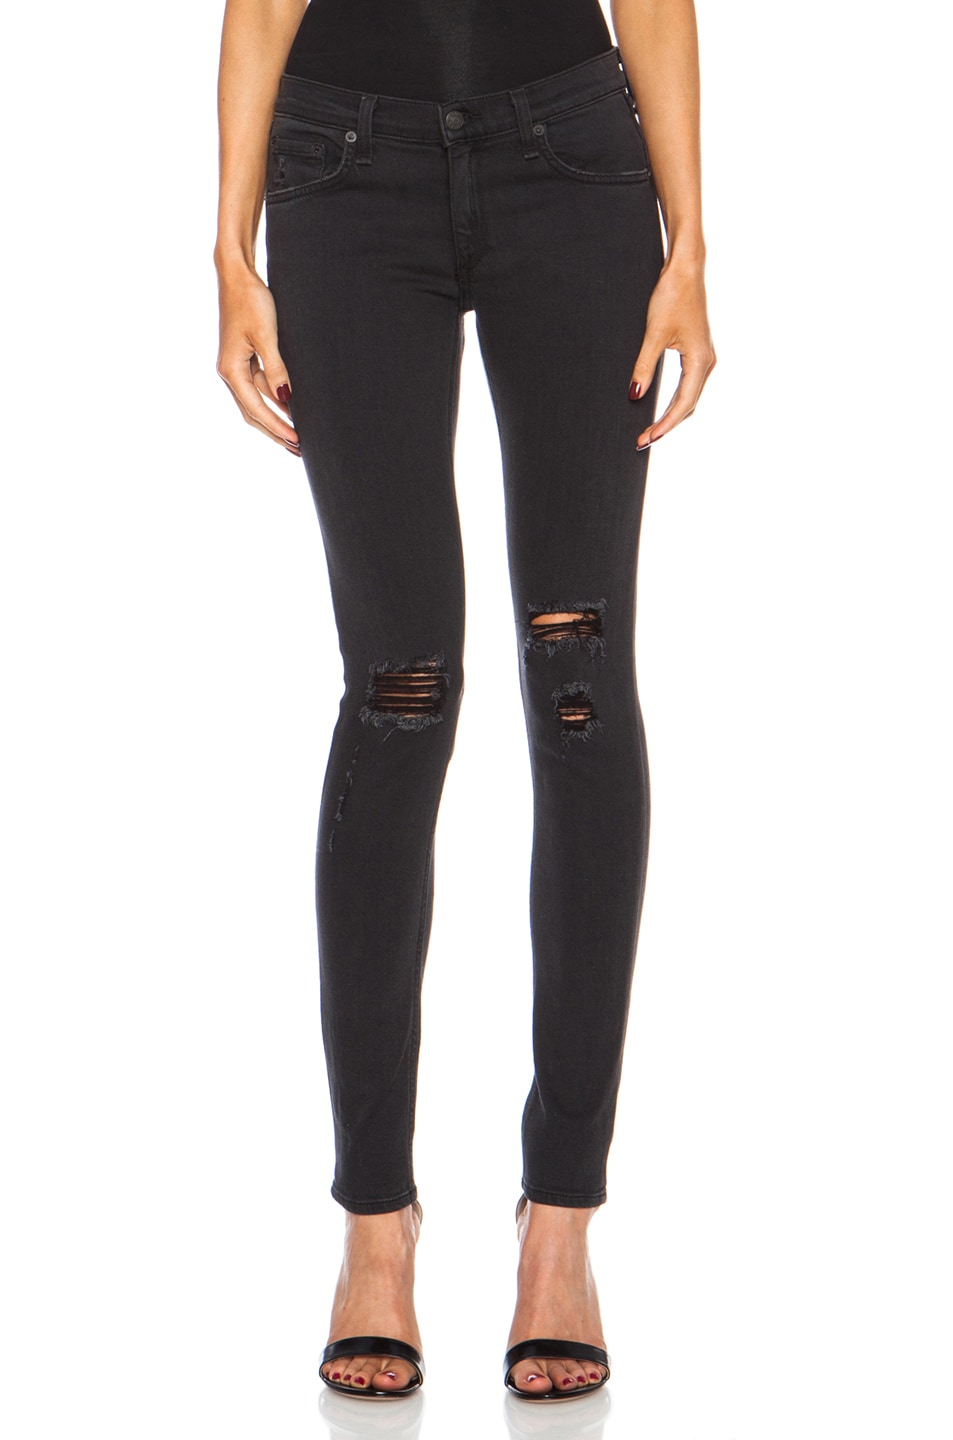 f3c2201a3da7 Image 1 of rag & bone/JEAN The Skinny in Soft Rock with Holes